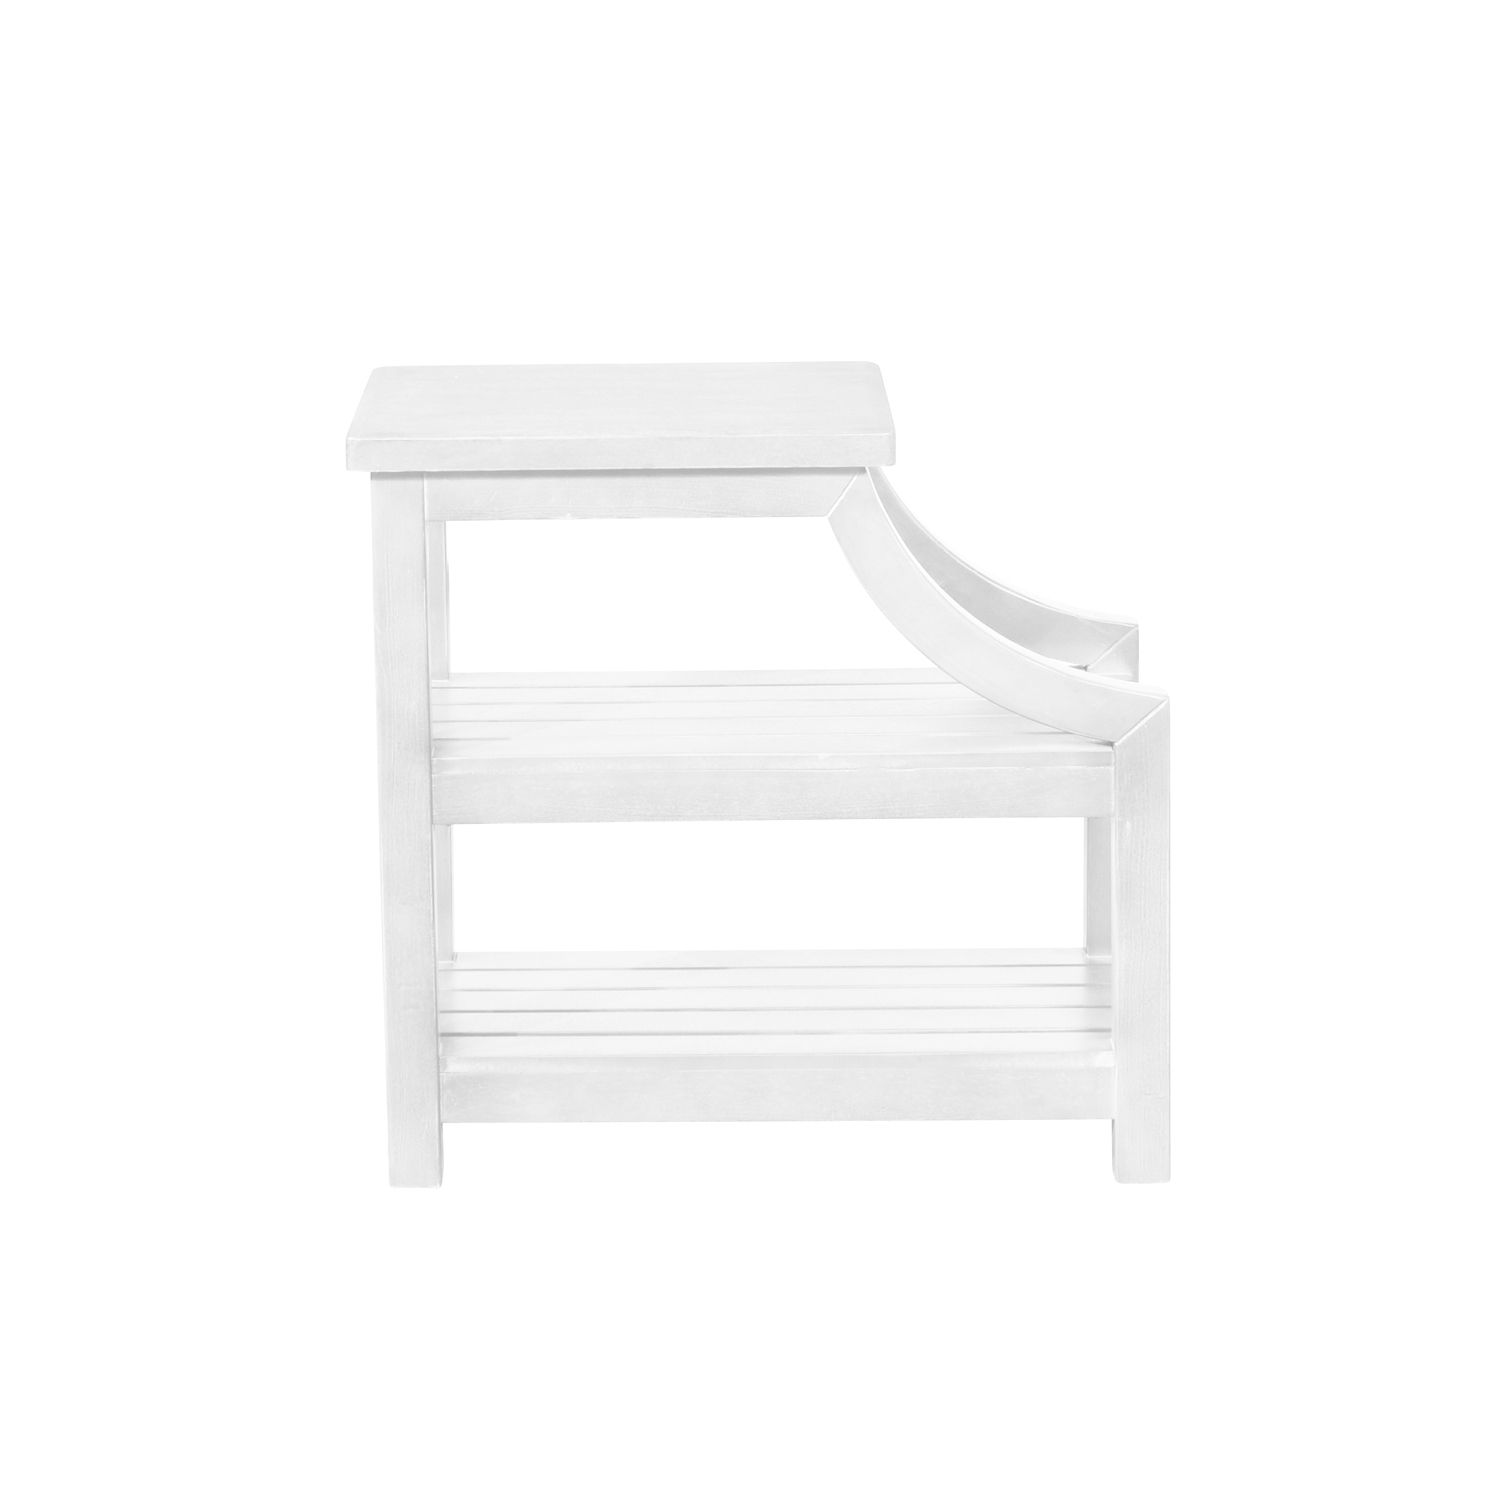 Williams White Tiered Side Table